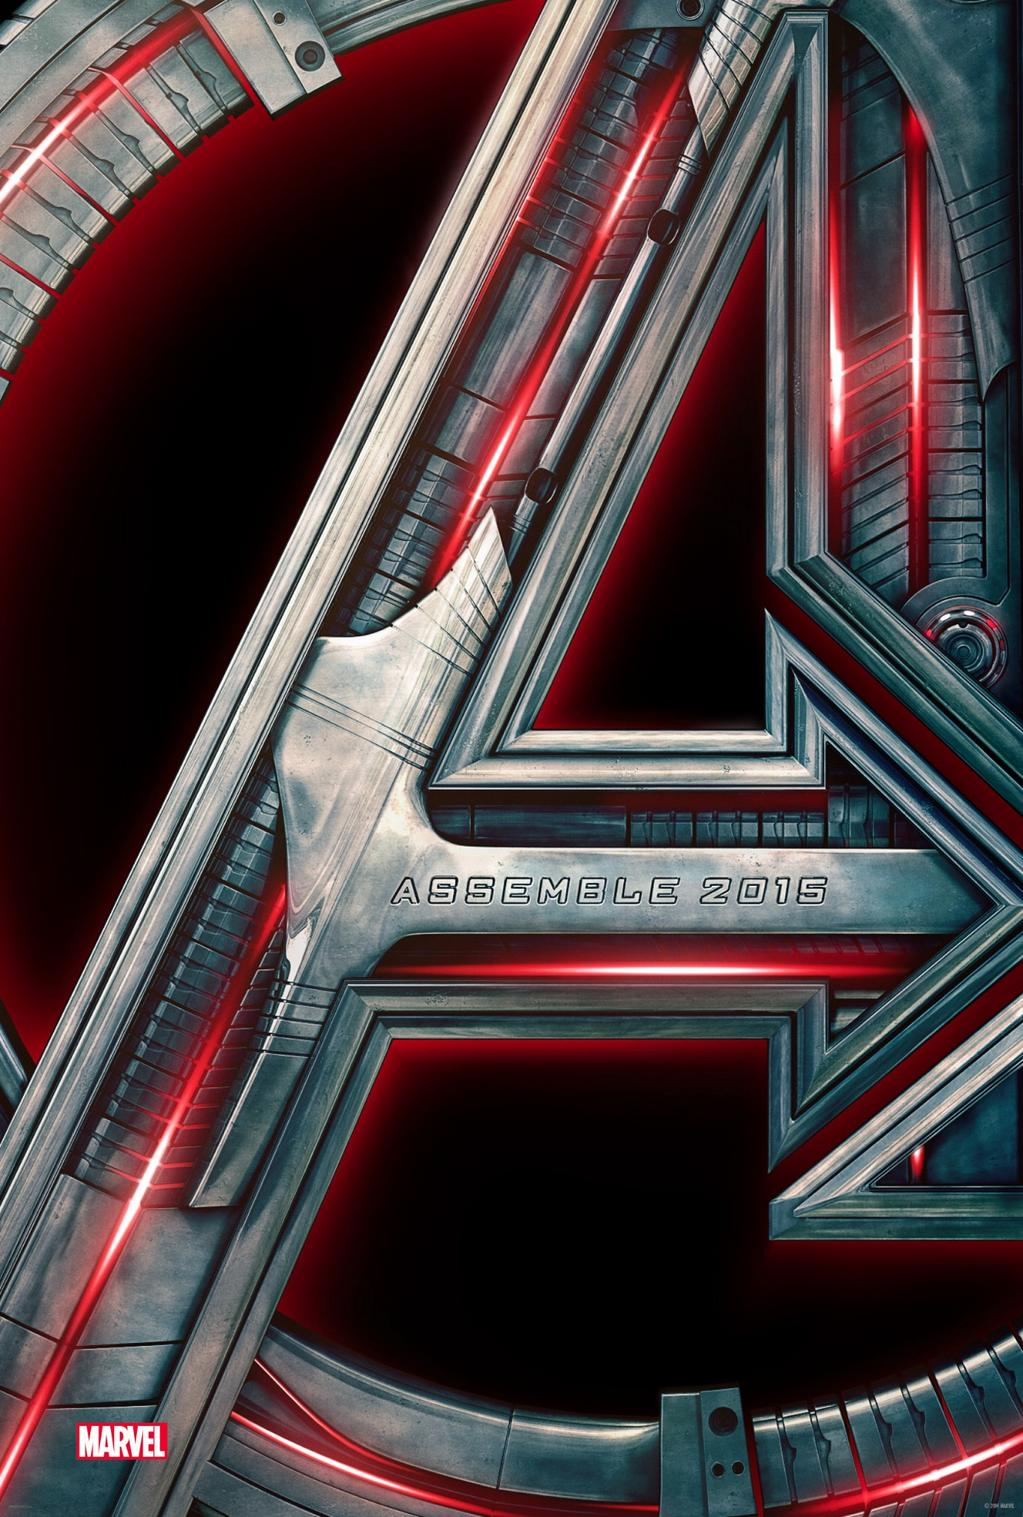 Marvel Officially Releases Avengers: Age Of Ultron Trailer And Poster